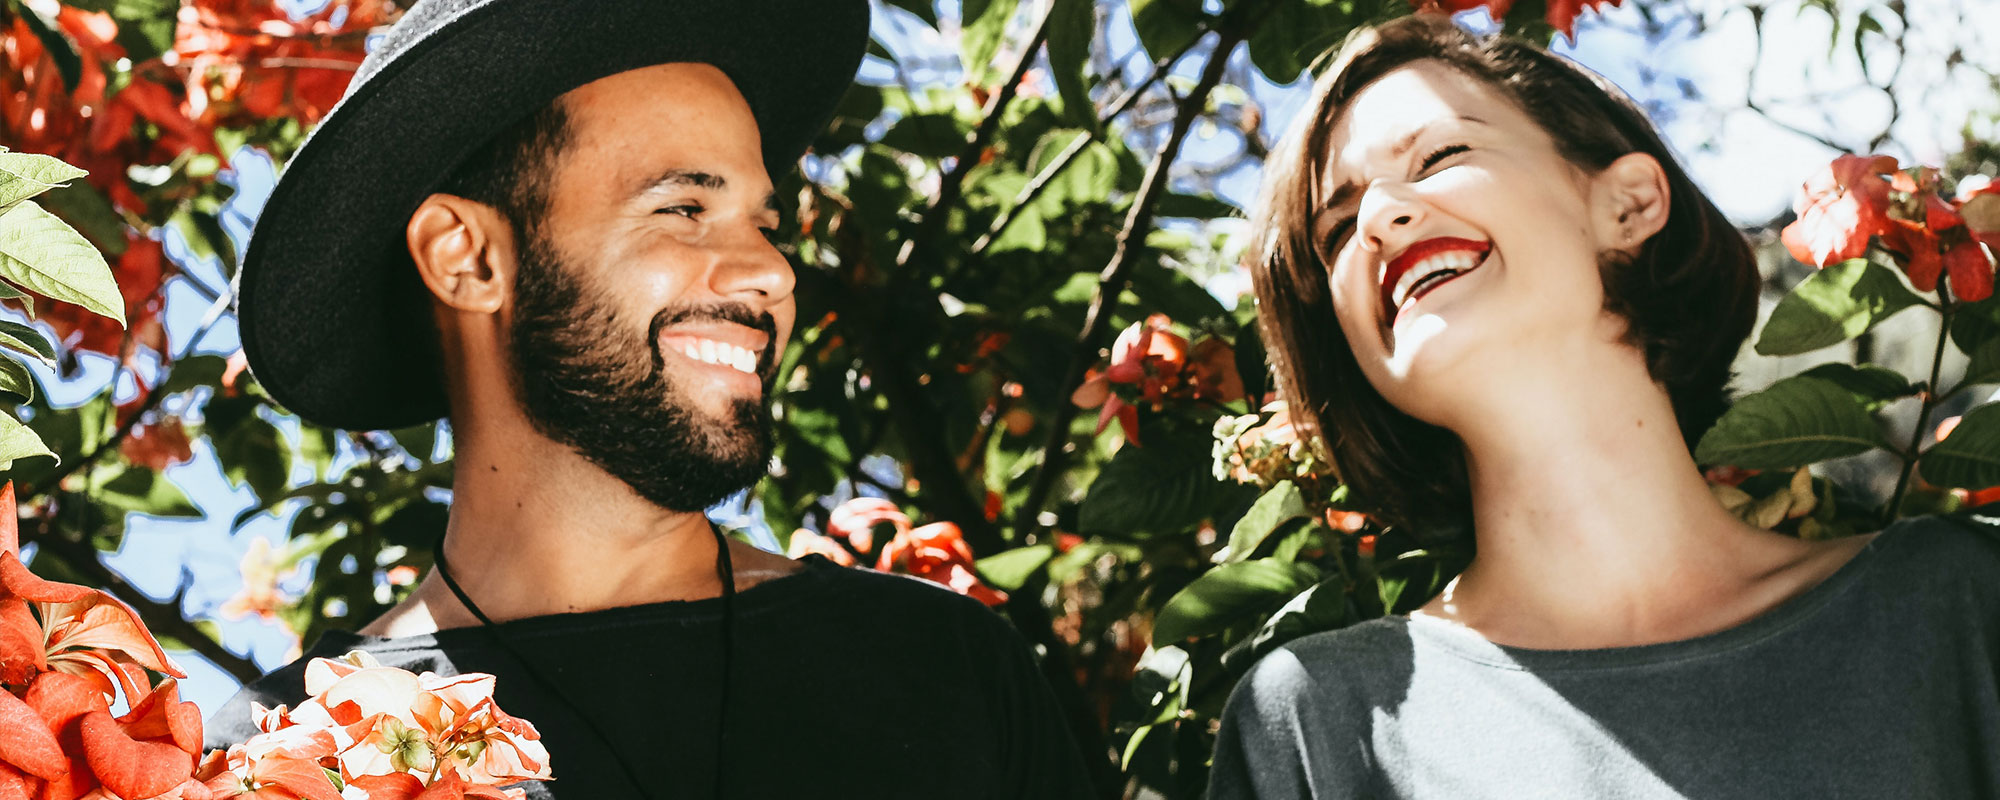 A couple on a date smiling and laughing together, surrounded by flowers in a tree